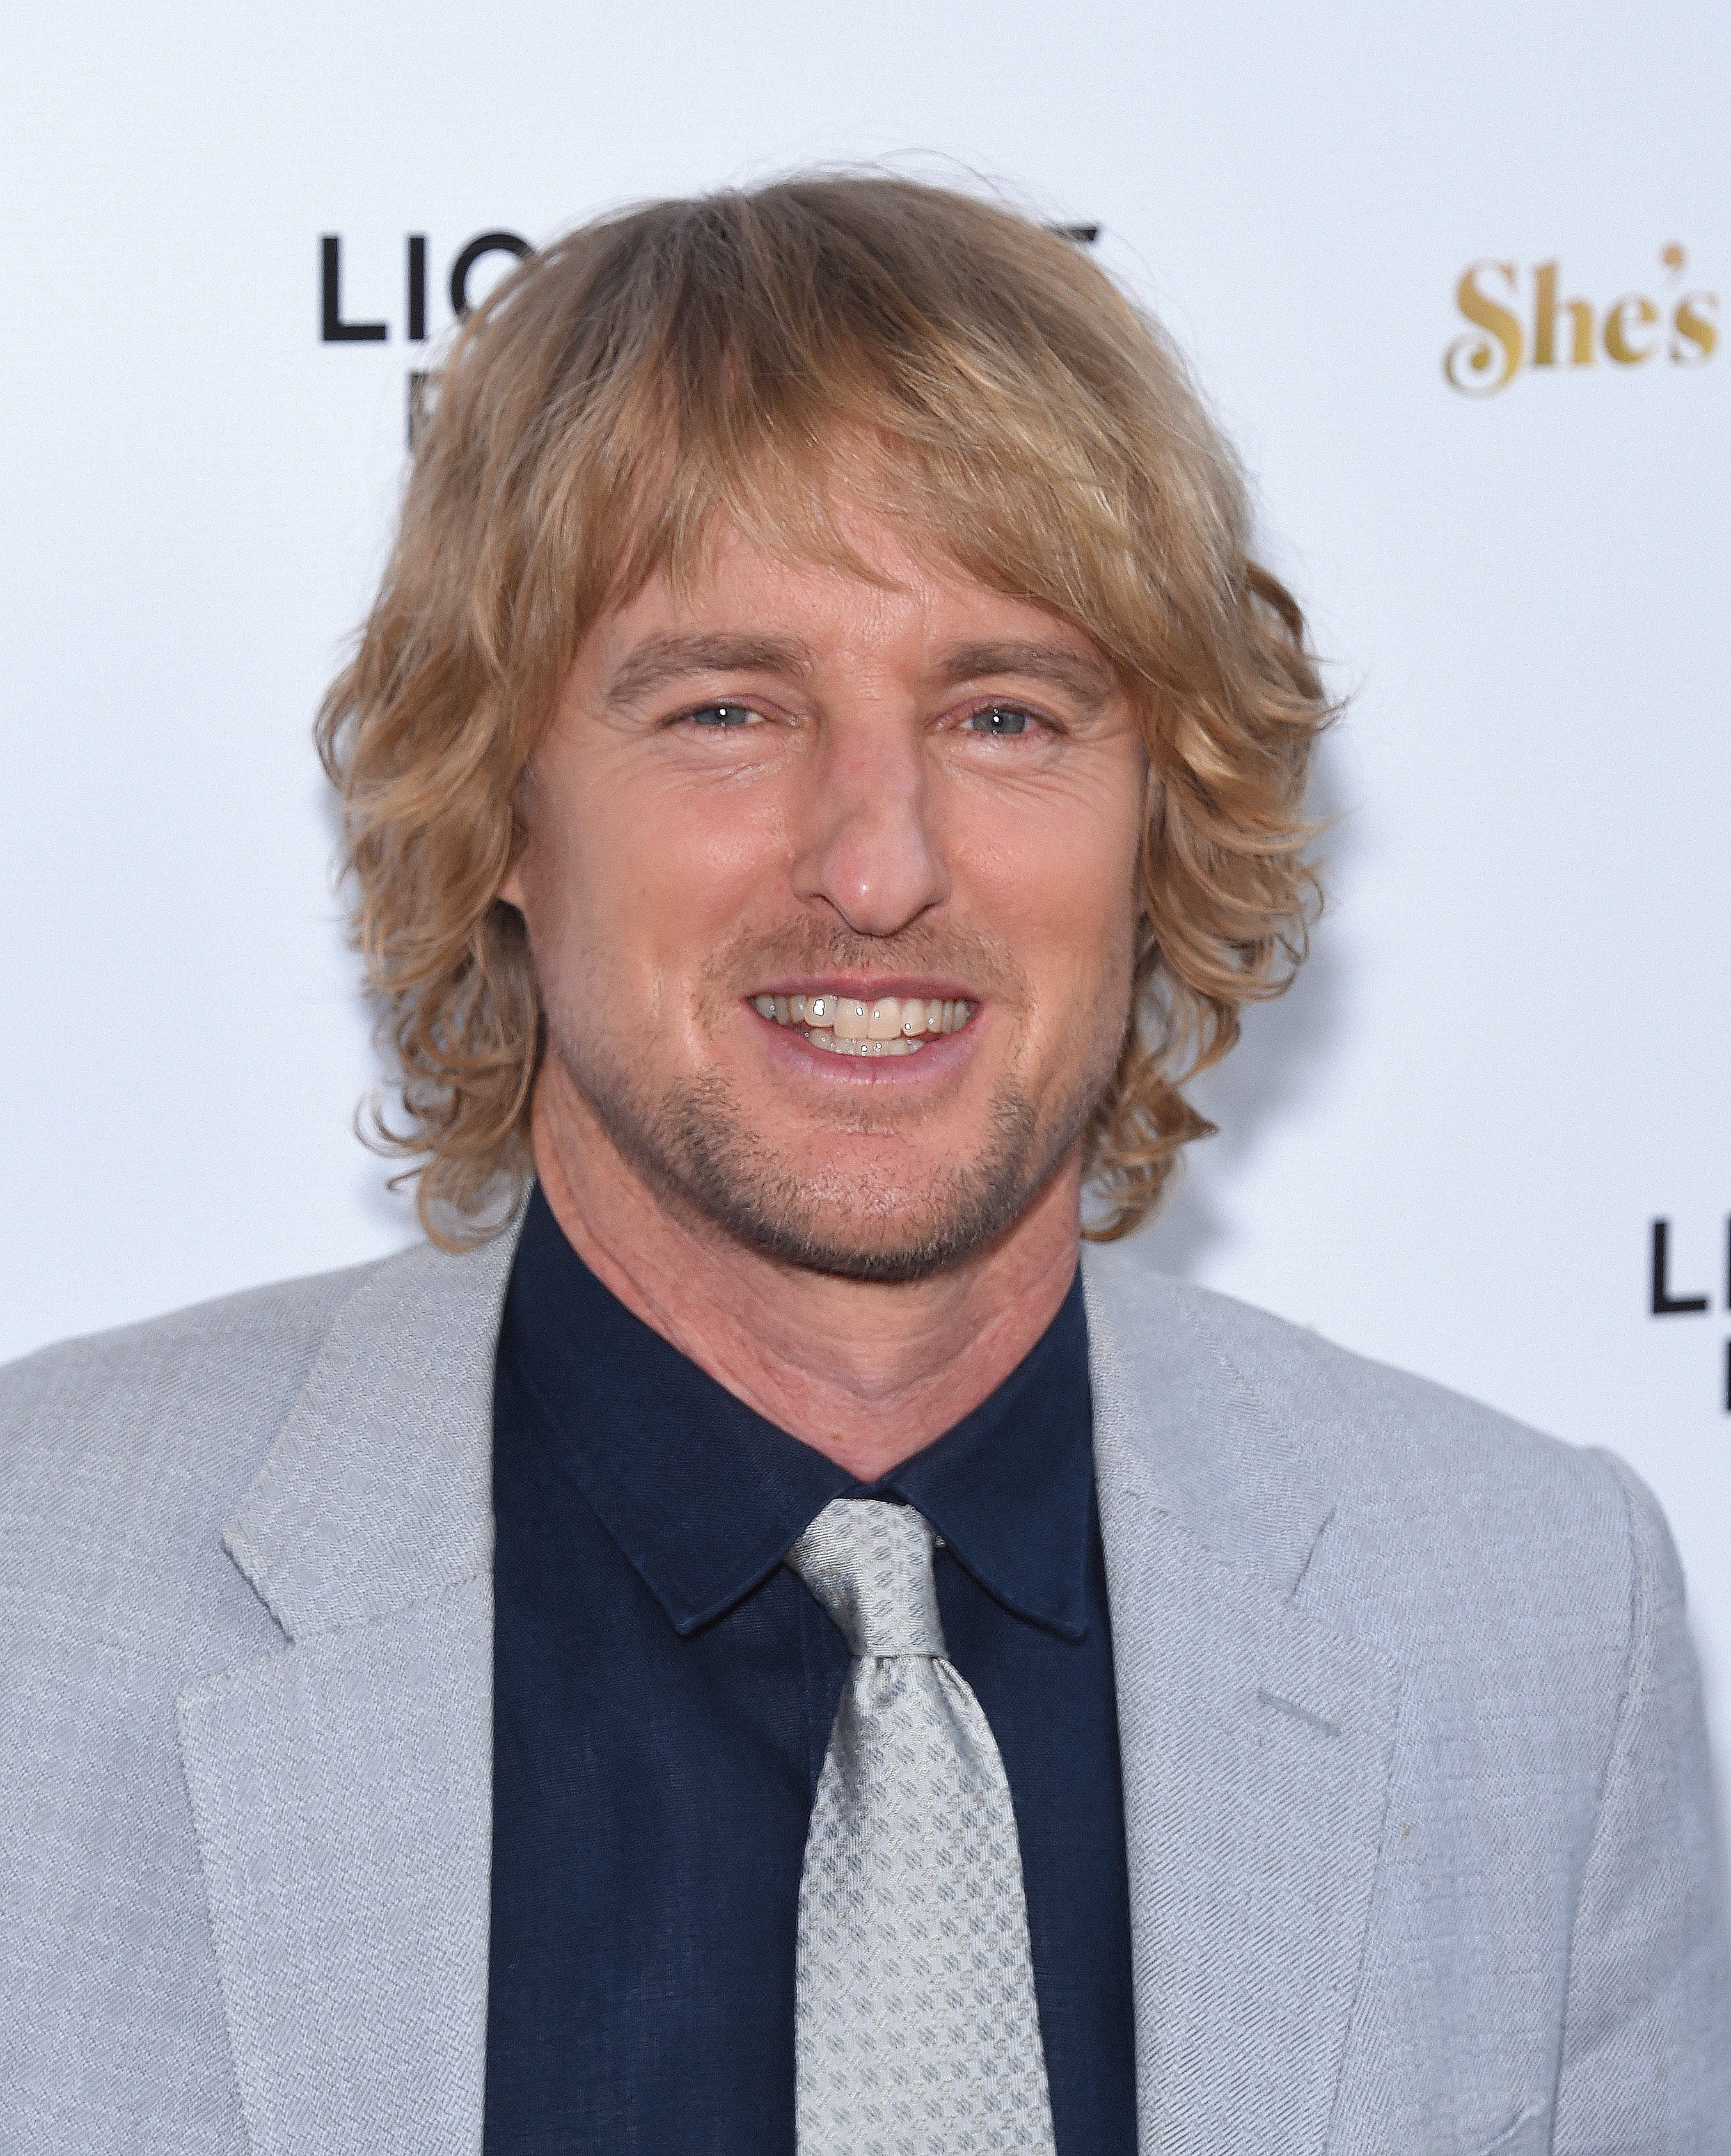 """Owen Wilson pictured at the Premiere for """"She's Funny That Way"""" at Harmony Gold on August 19, 2015 